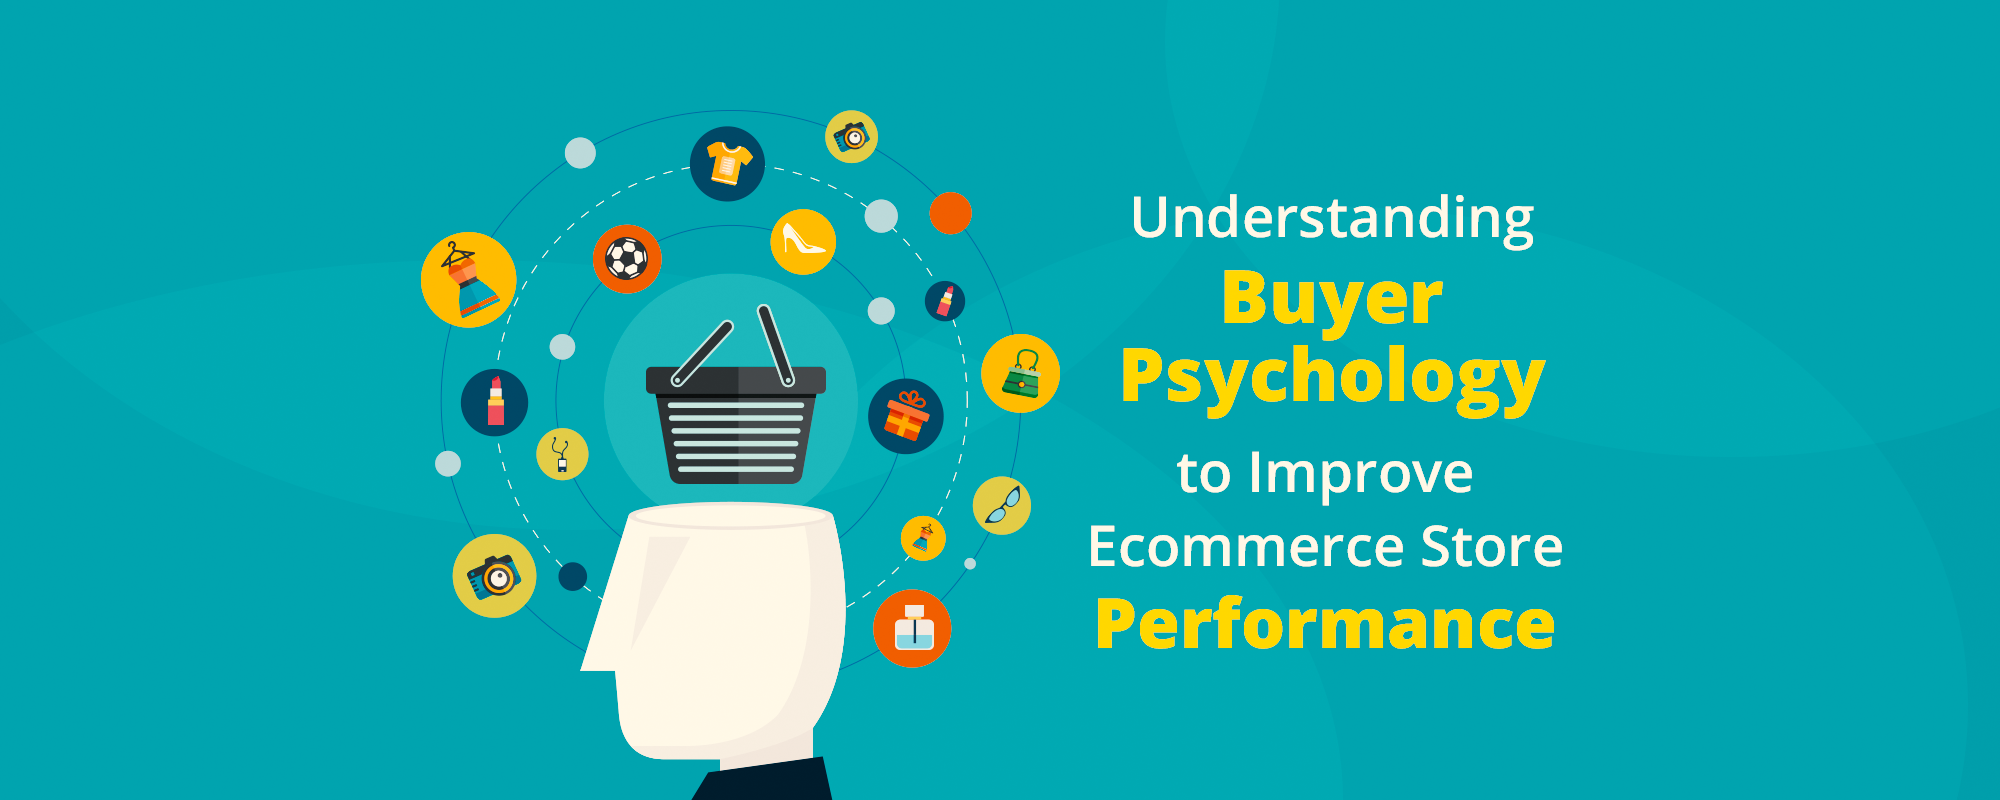 Buyer Behavior Insights and Data Sources to Increase Ecommerce Sales